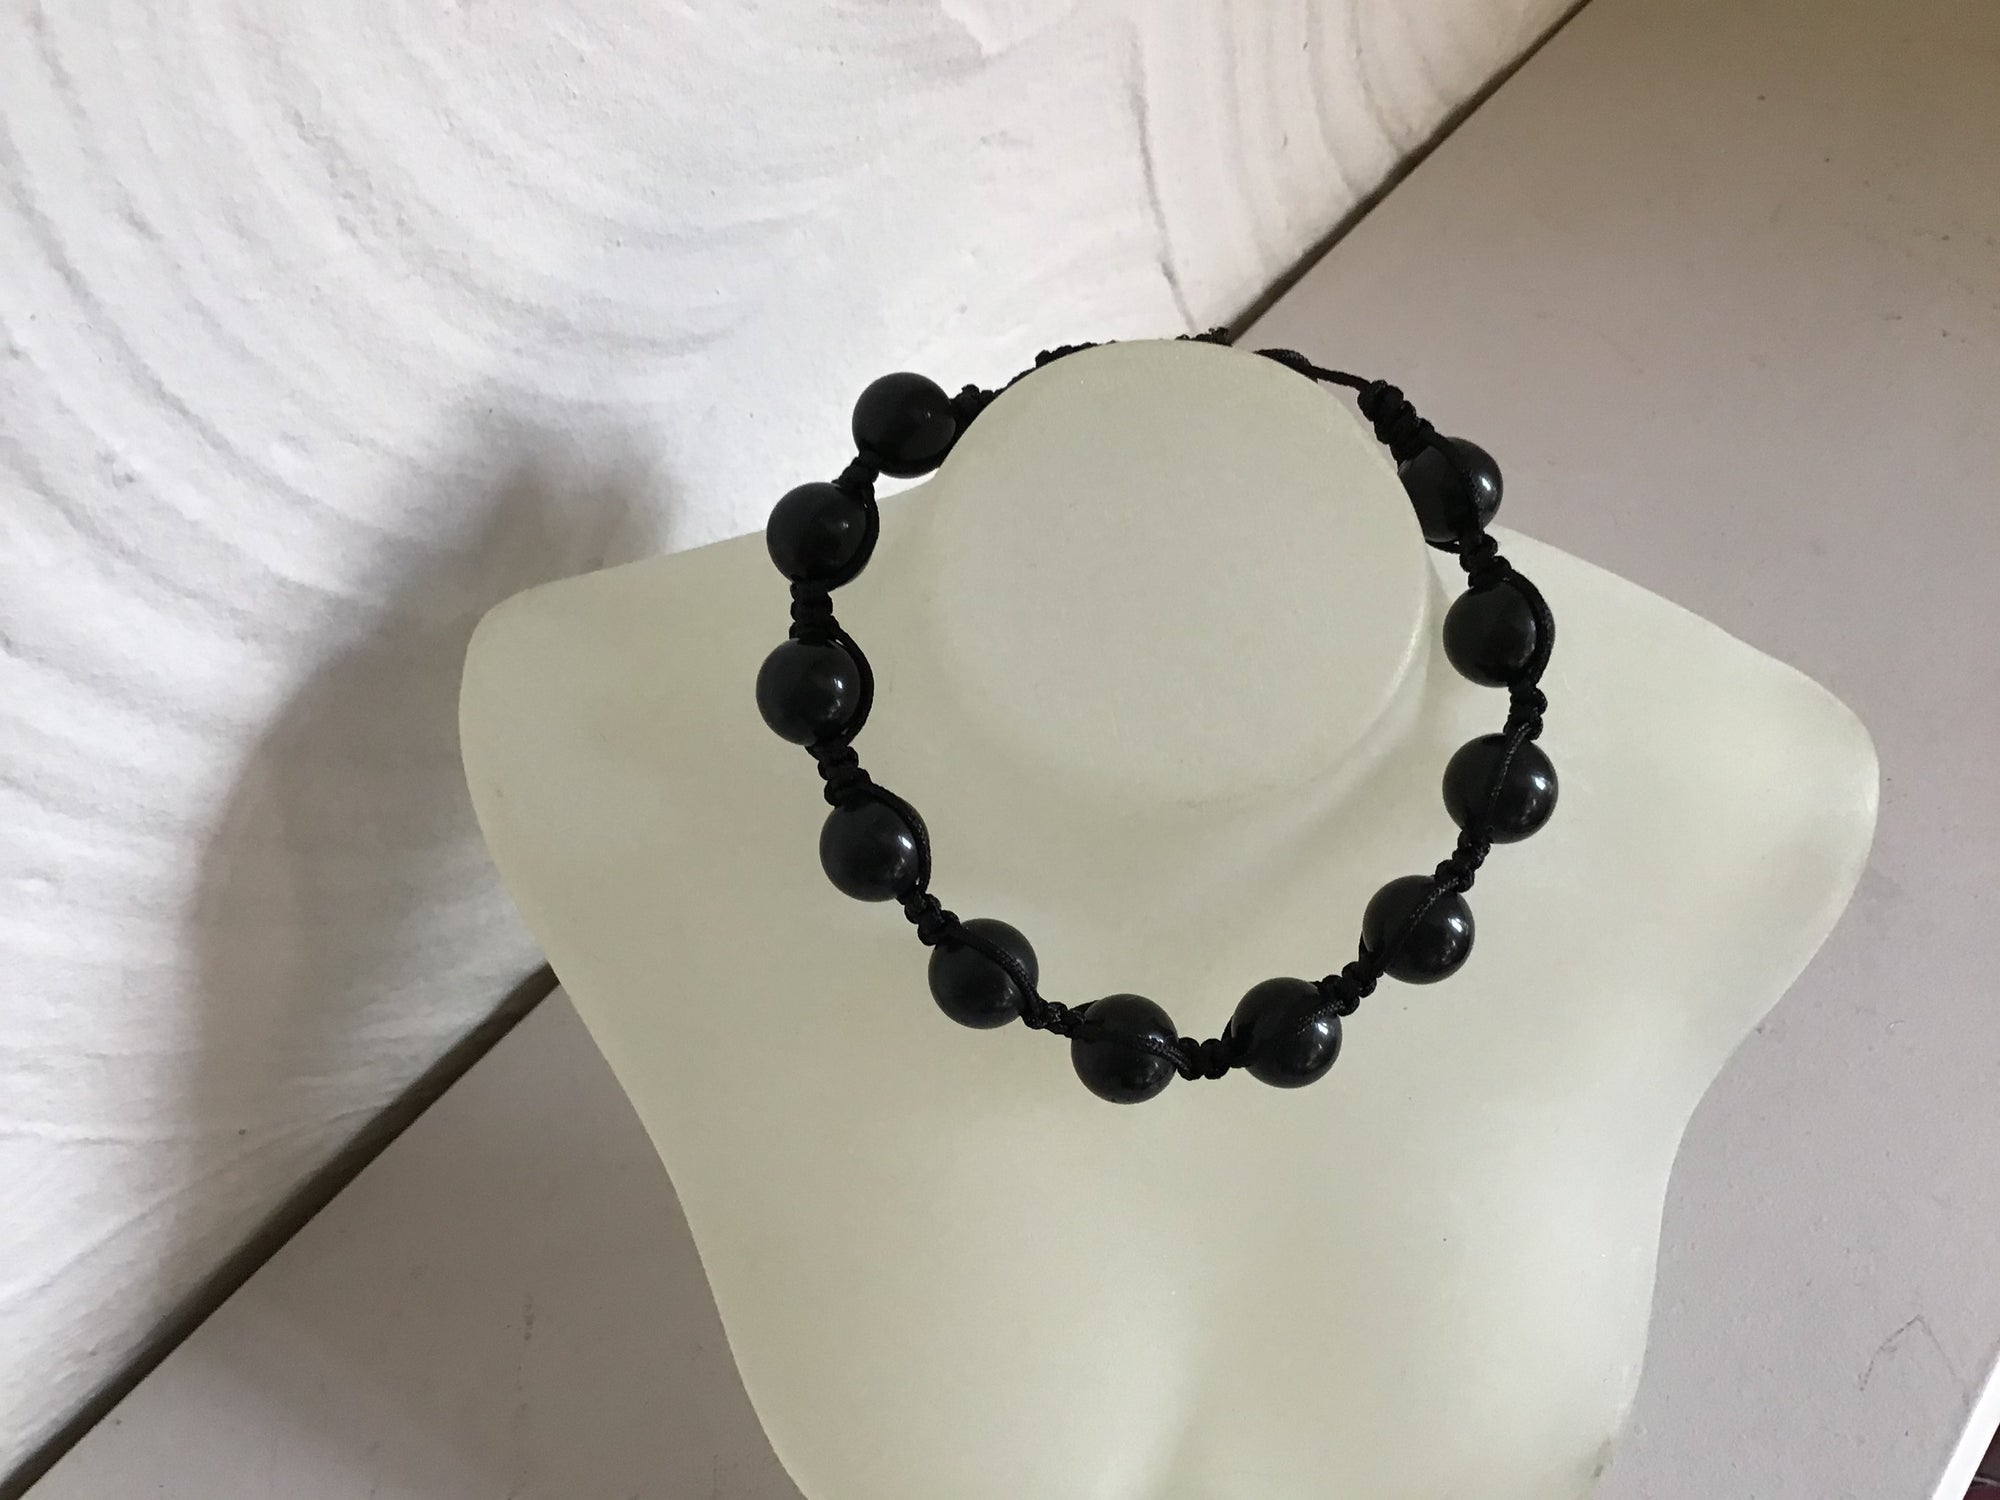 Friendship bracelet Black Onyx stone